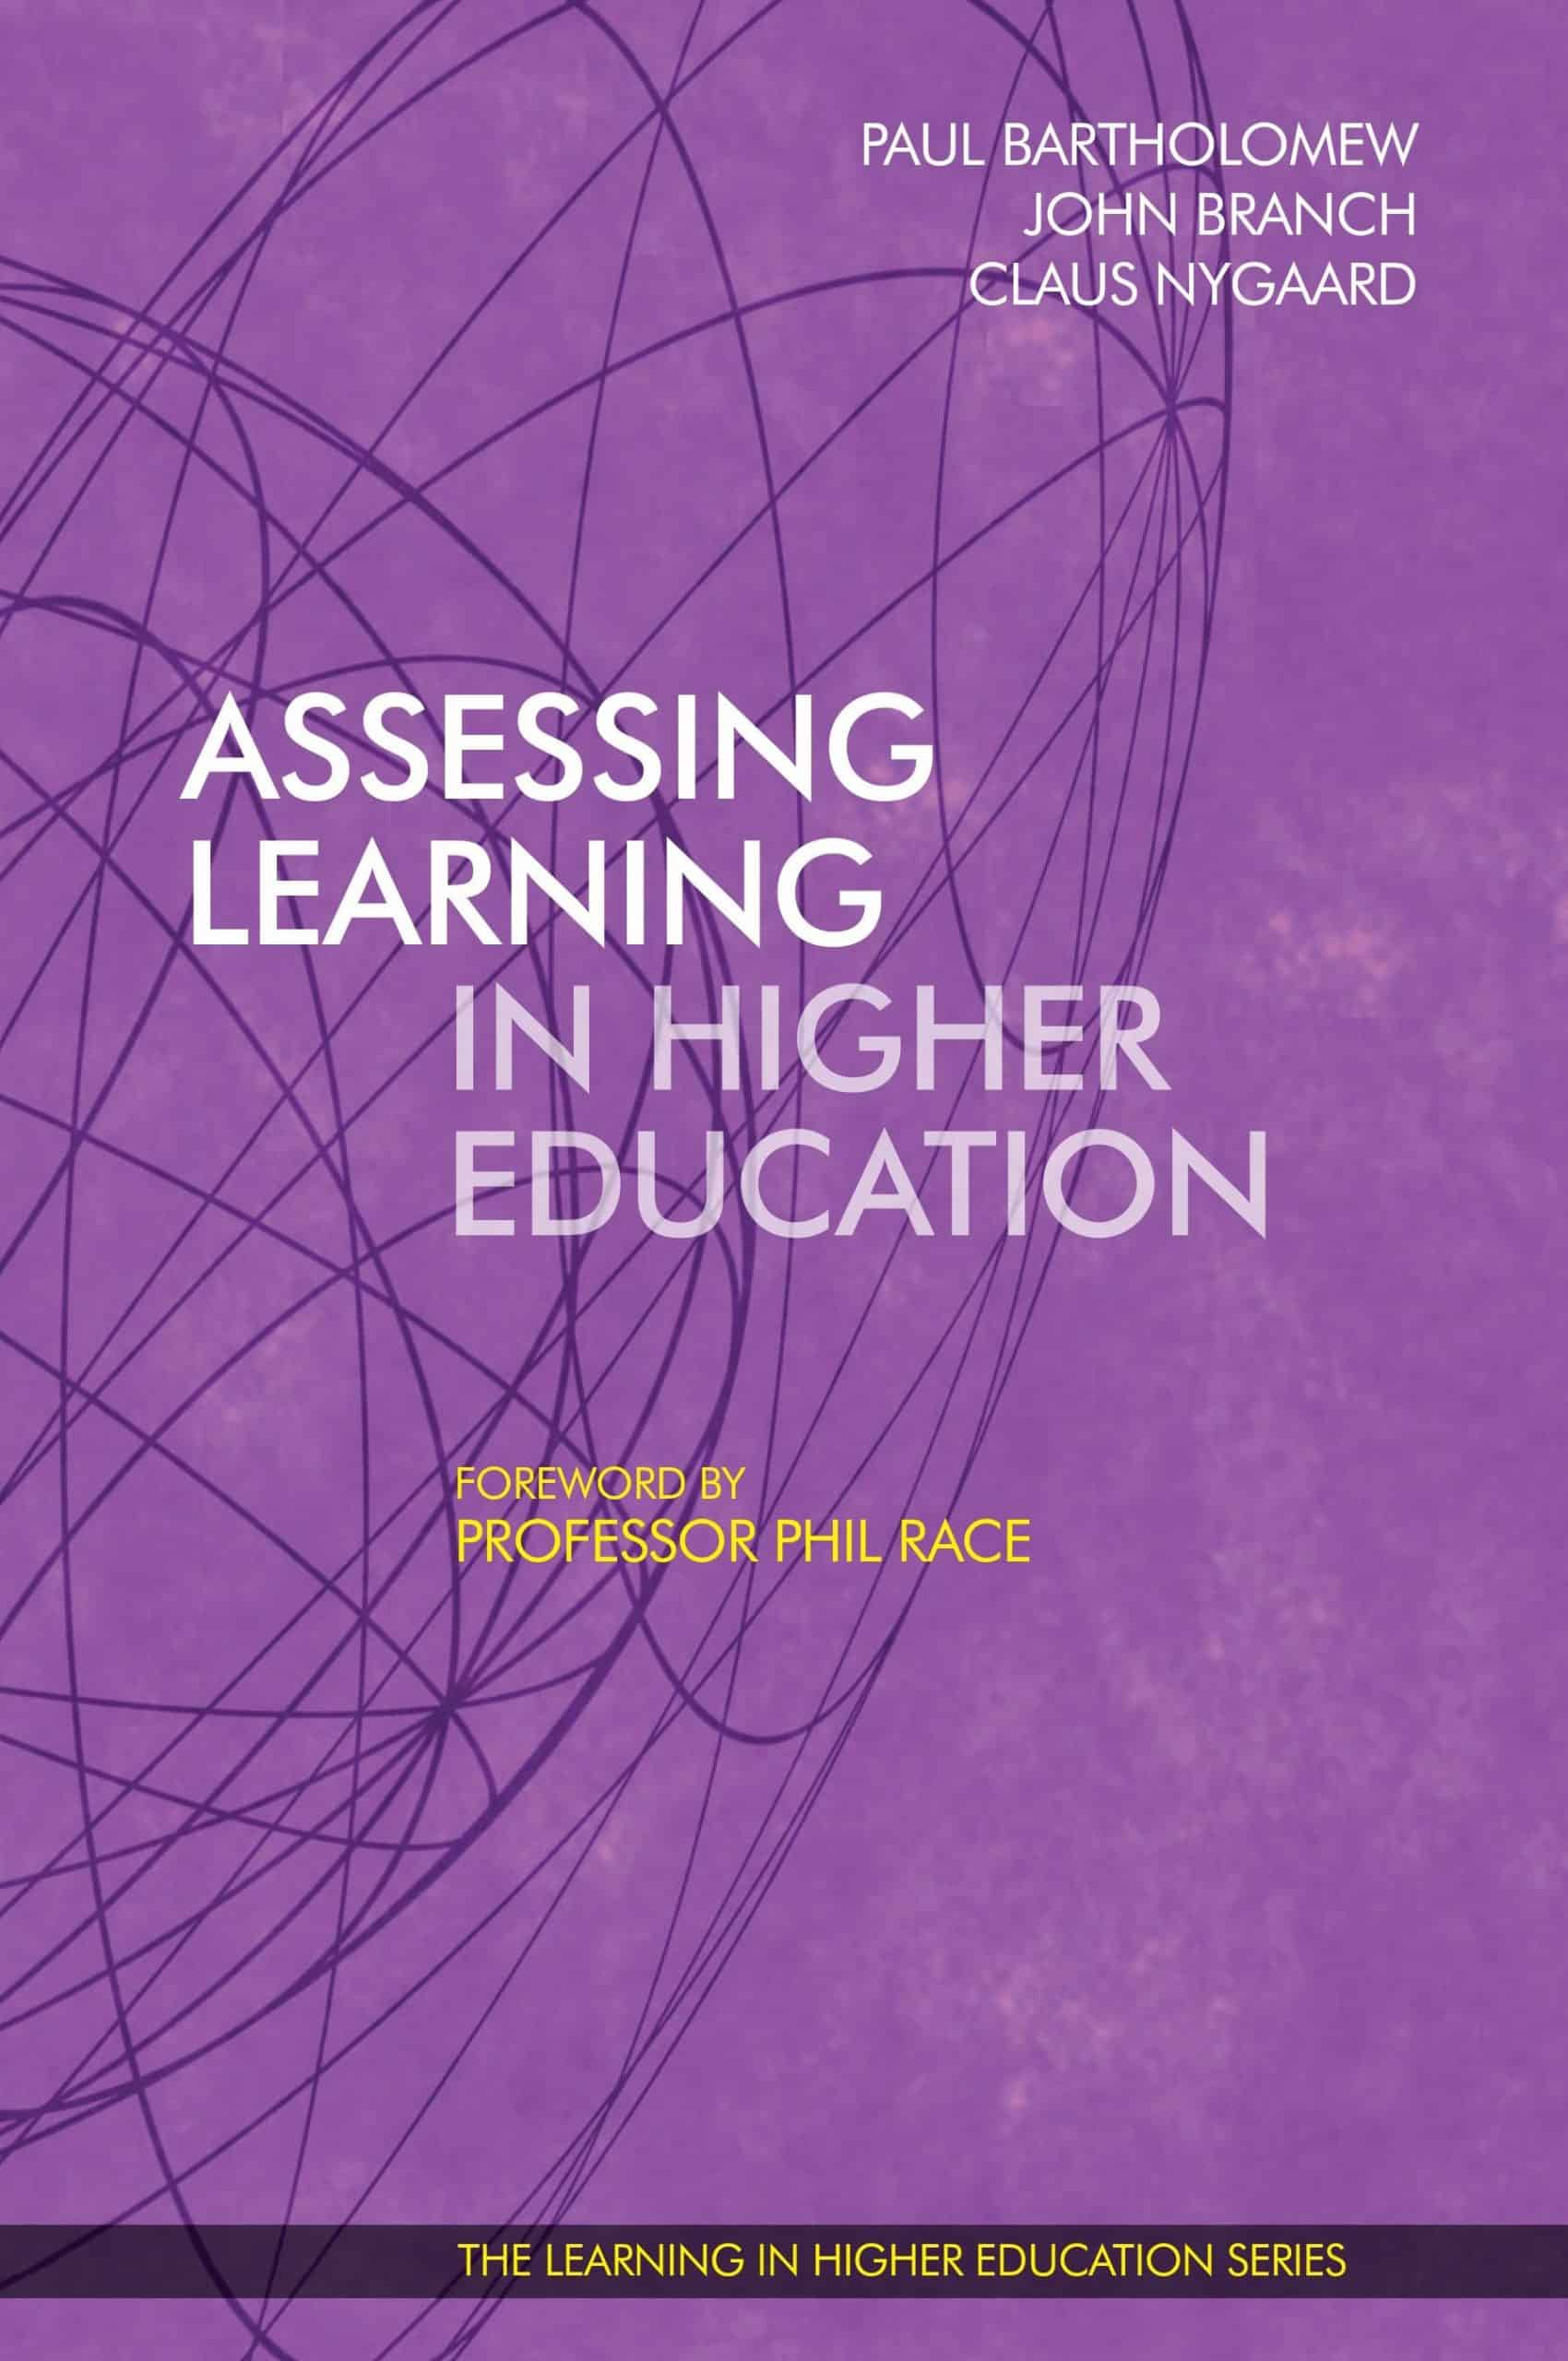 Assessing Learning in Higher Education - Paul Bartholomew - John Branch - Claus Nygaard - Phil Race - Libri Publishing Ltd - Institute for Learning in Higher Education - professor Phil Race - vice chancellor Paul bartholomew - professor john branch - claus nygaard - libri publishing ltd - how to assess learning - assessment theory - assessment methods